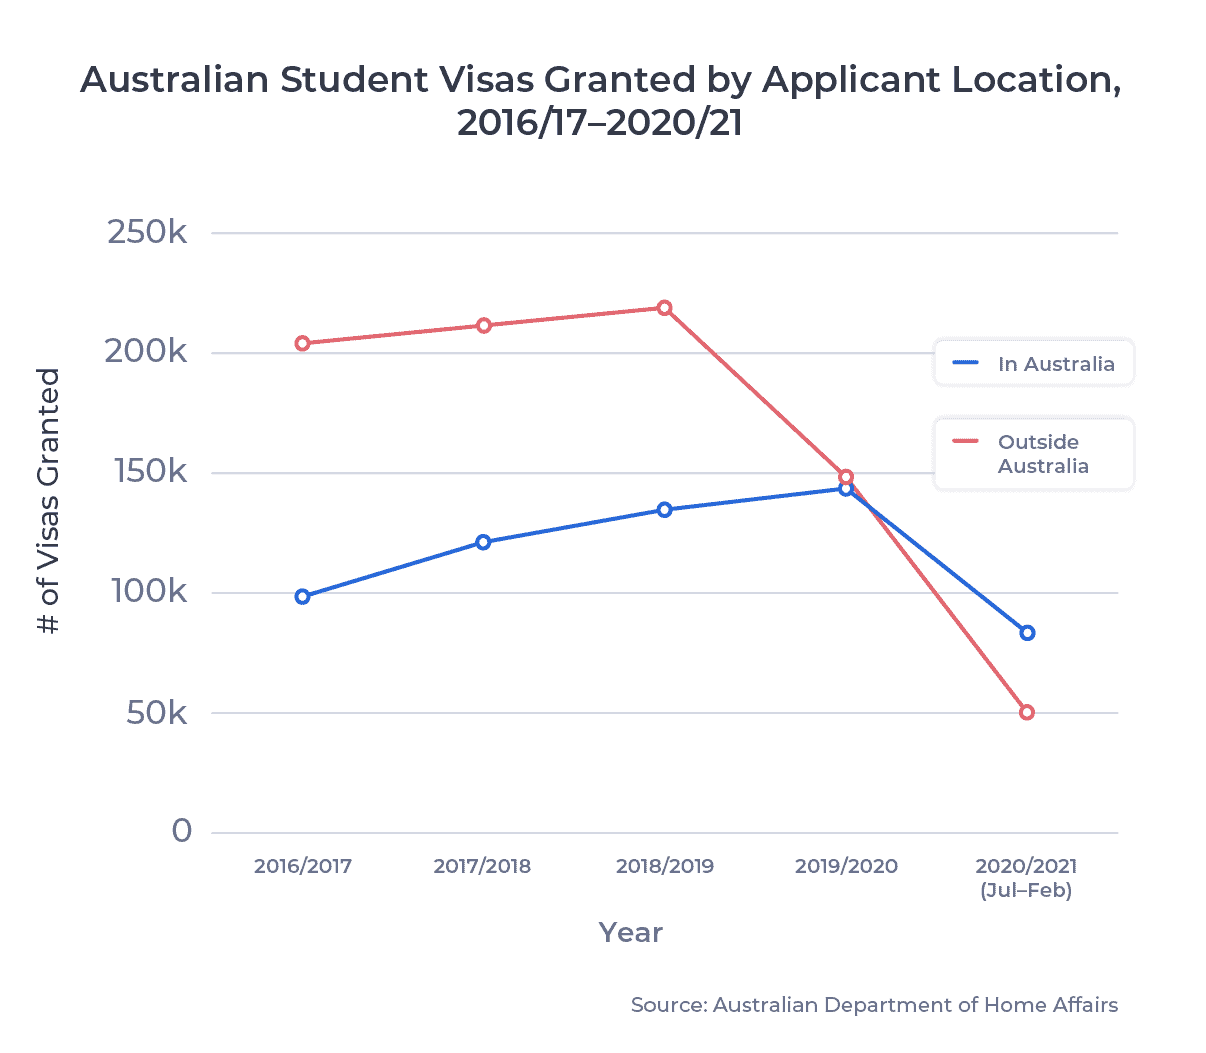 Australian Student Visas Granted by Application Location, 2016/17–2020/21